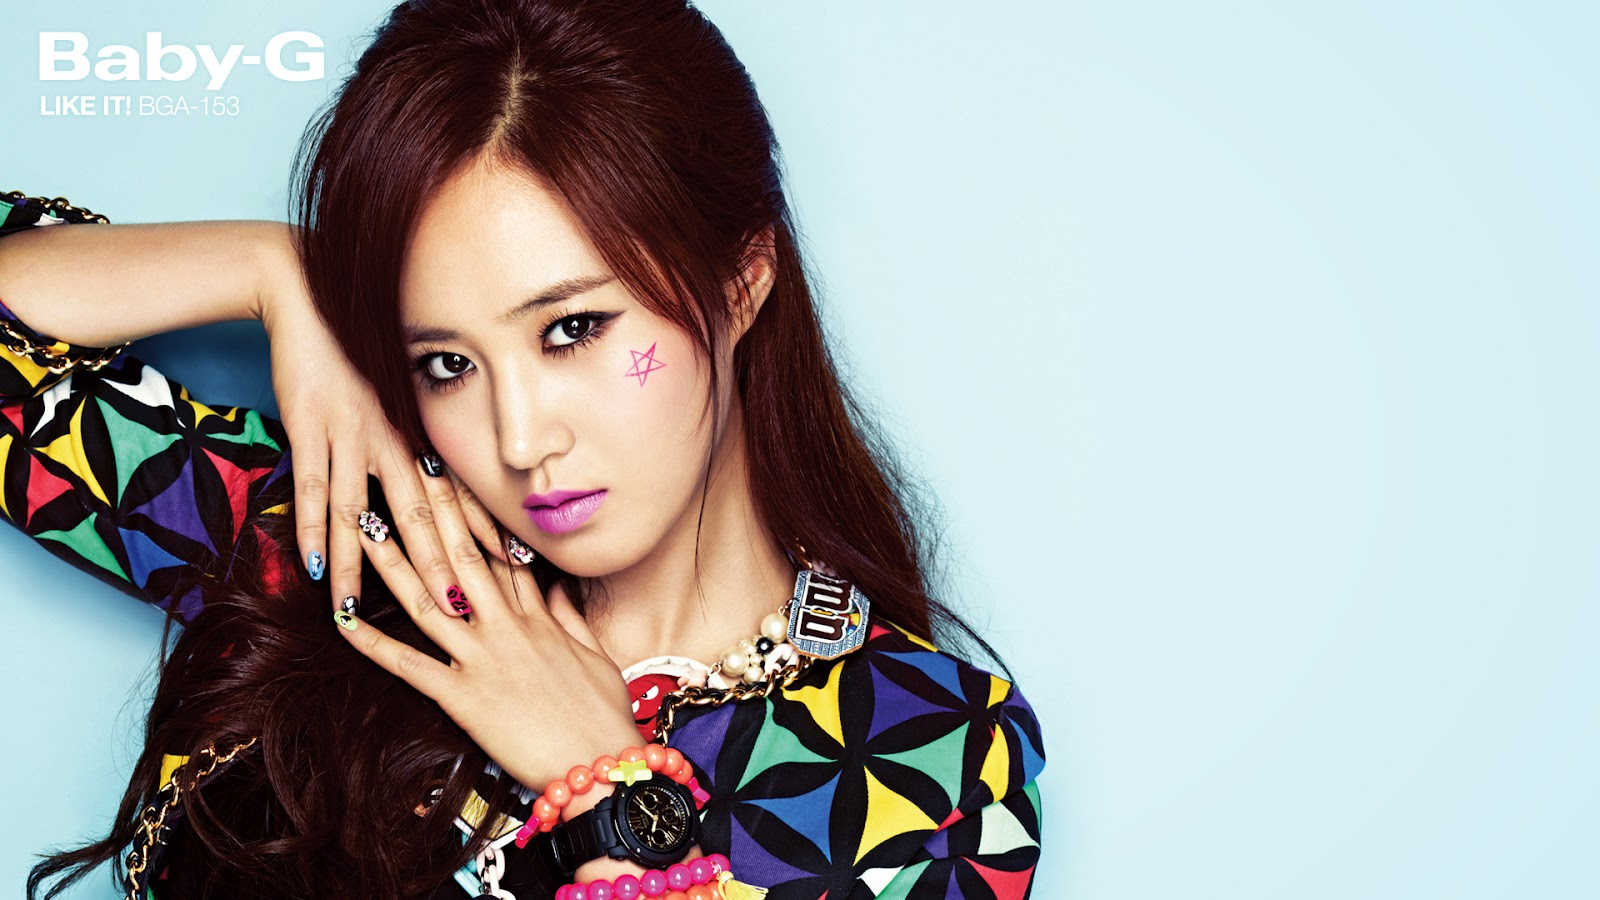 Now Its The Sexy Yuris Turn Casio Baby G Wallpaper And Screensaver 4th Release Next Is On October 1st Enjoy Downloads Below